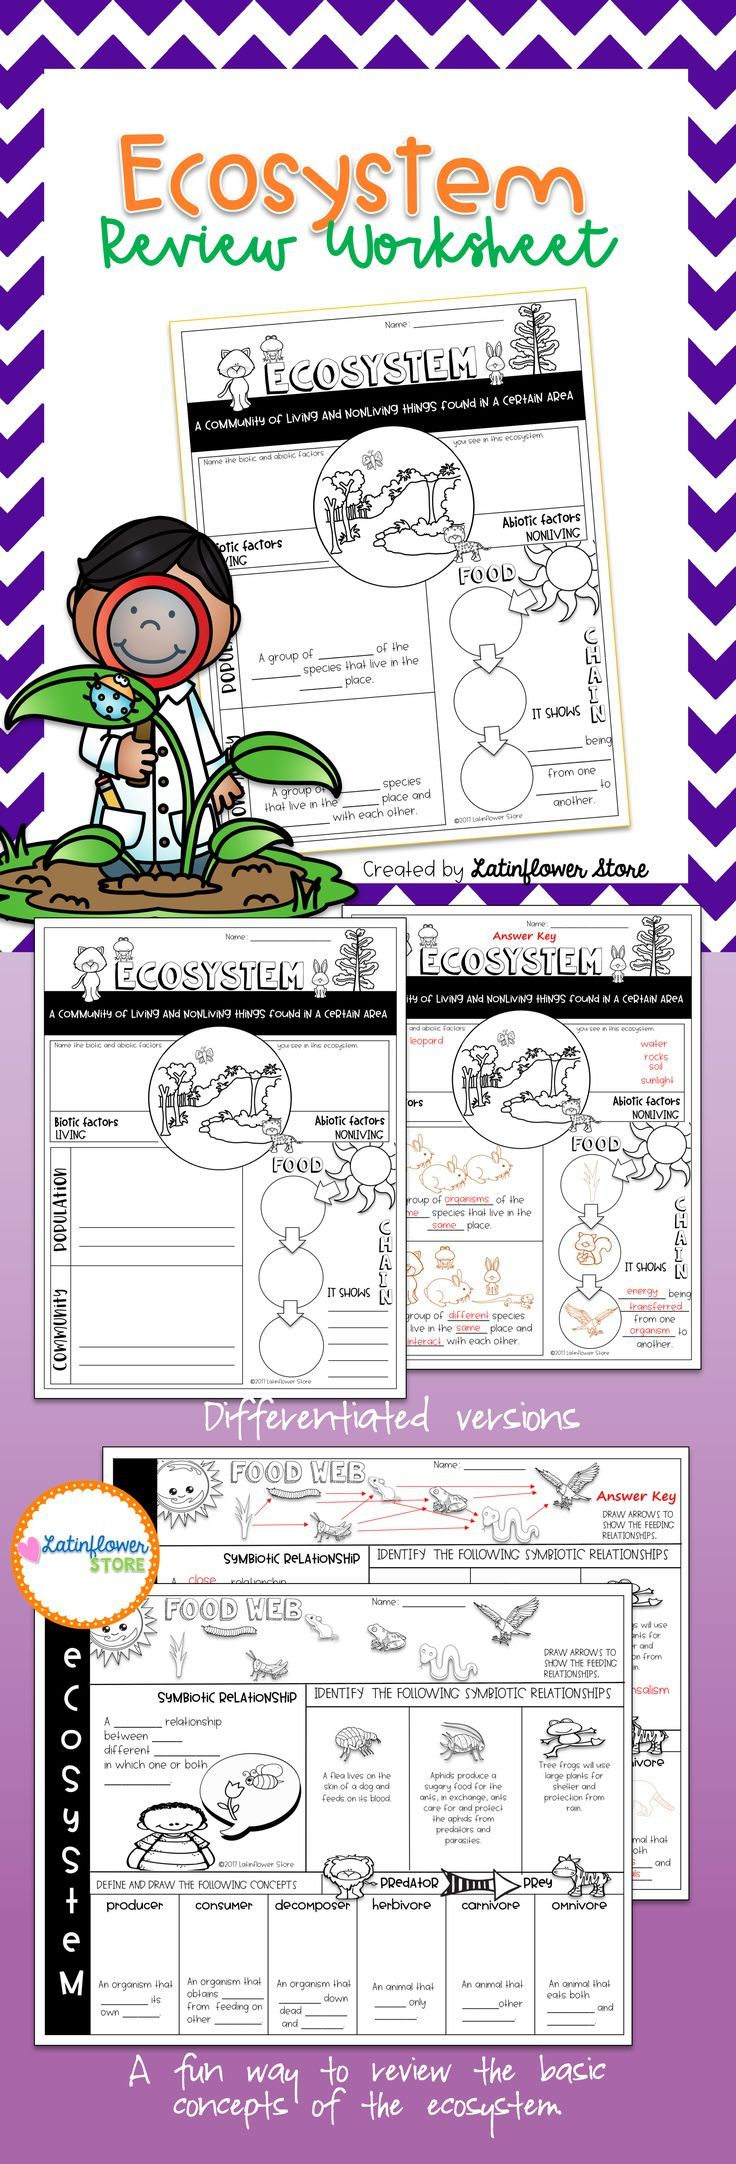 Ecosystem Review Worksheet Ecosystems Biology Experiments Teaching Resources